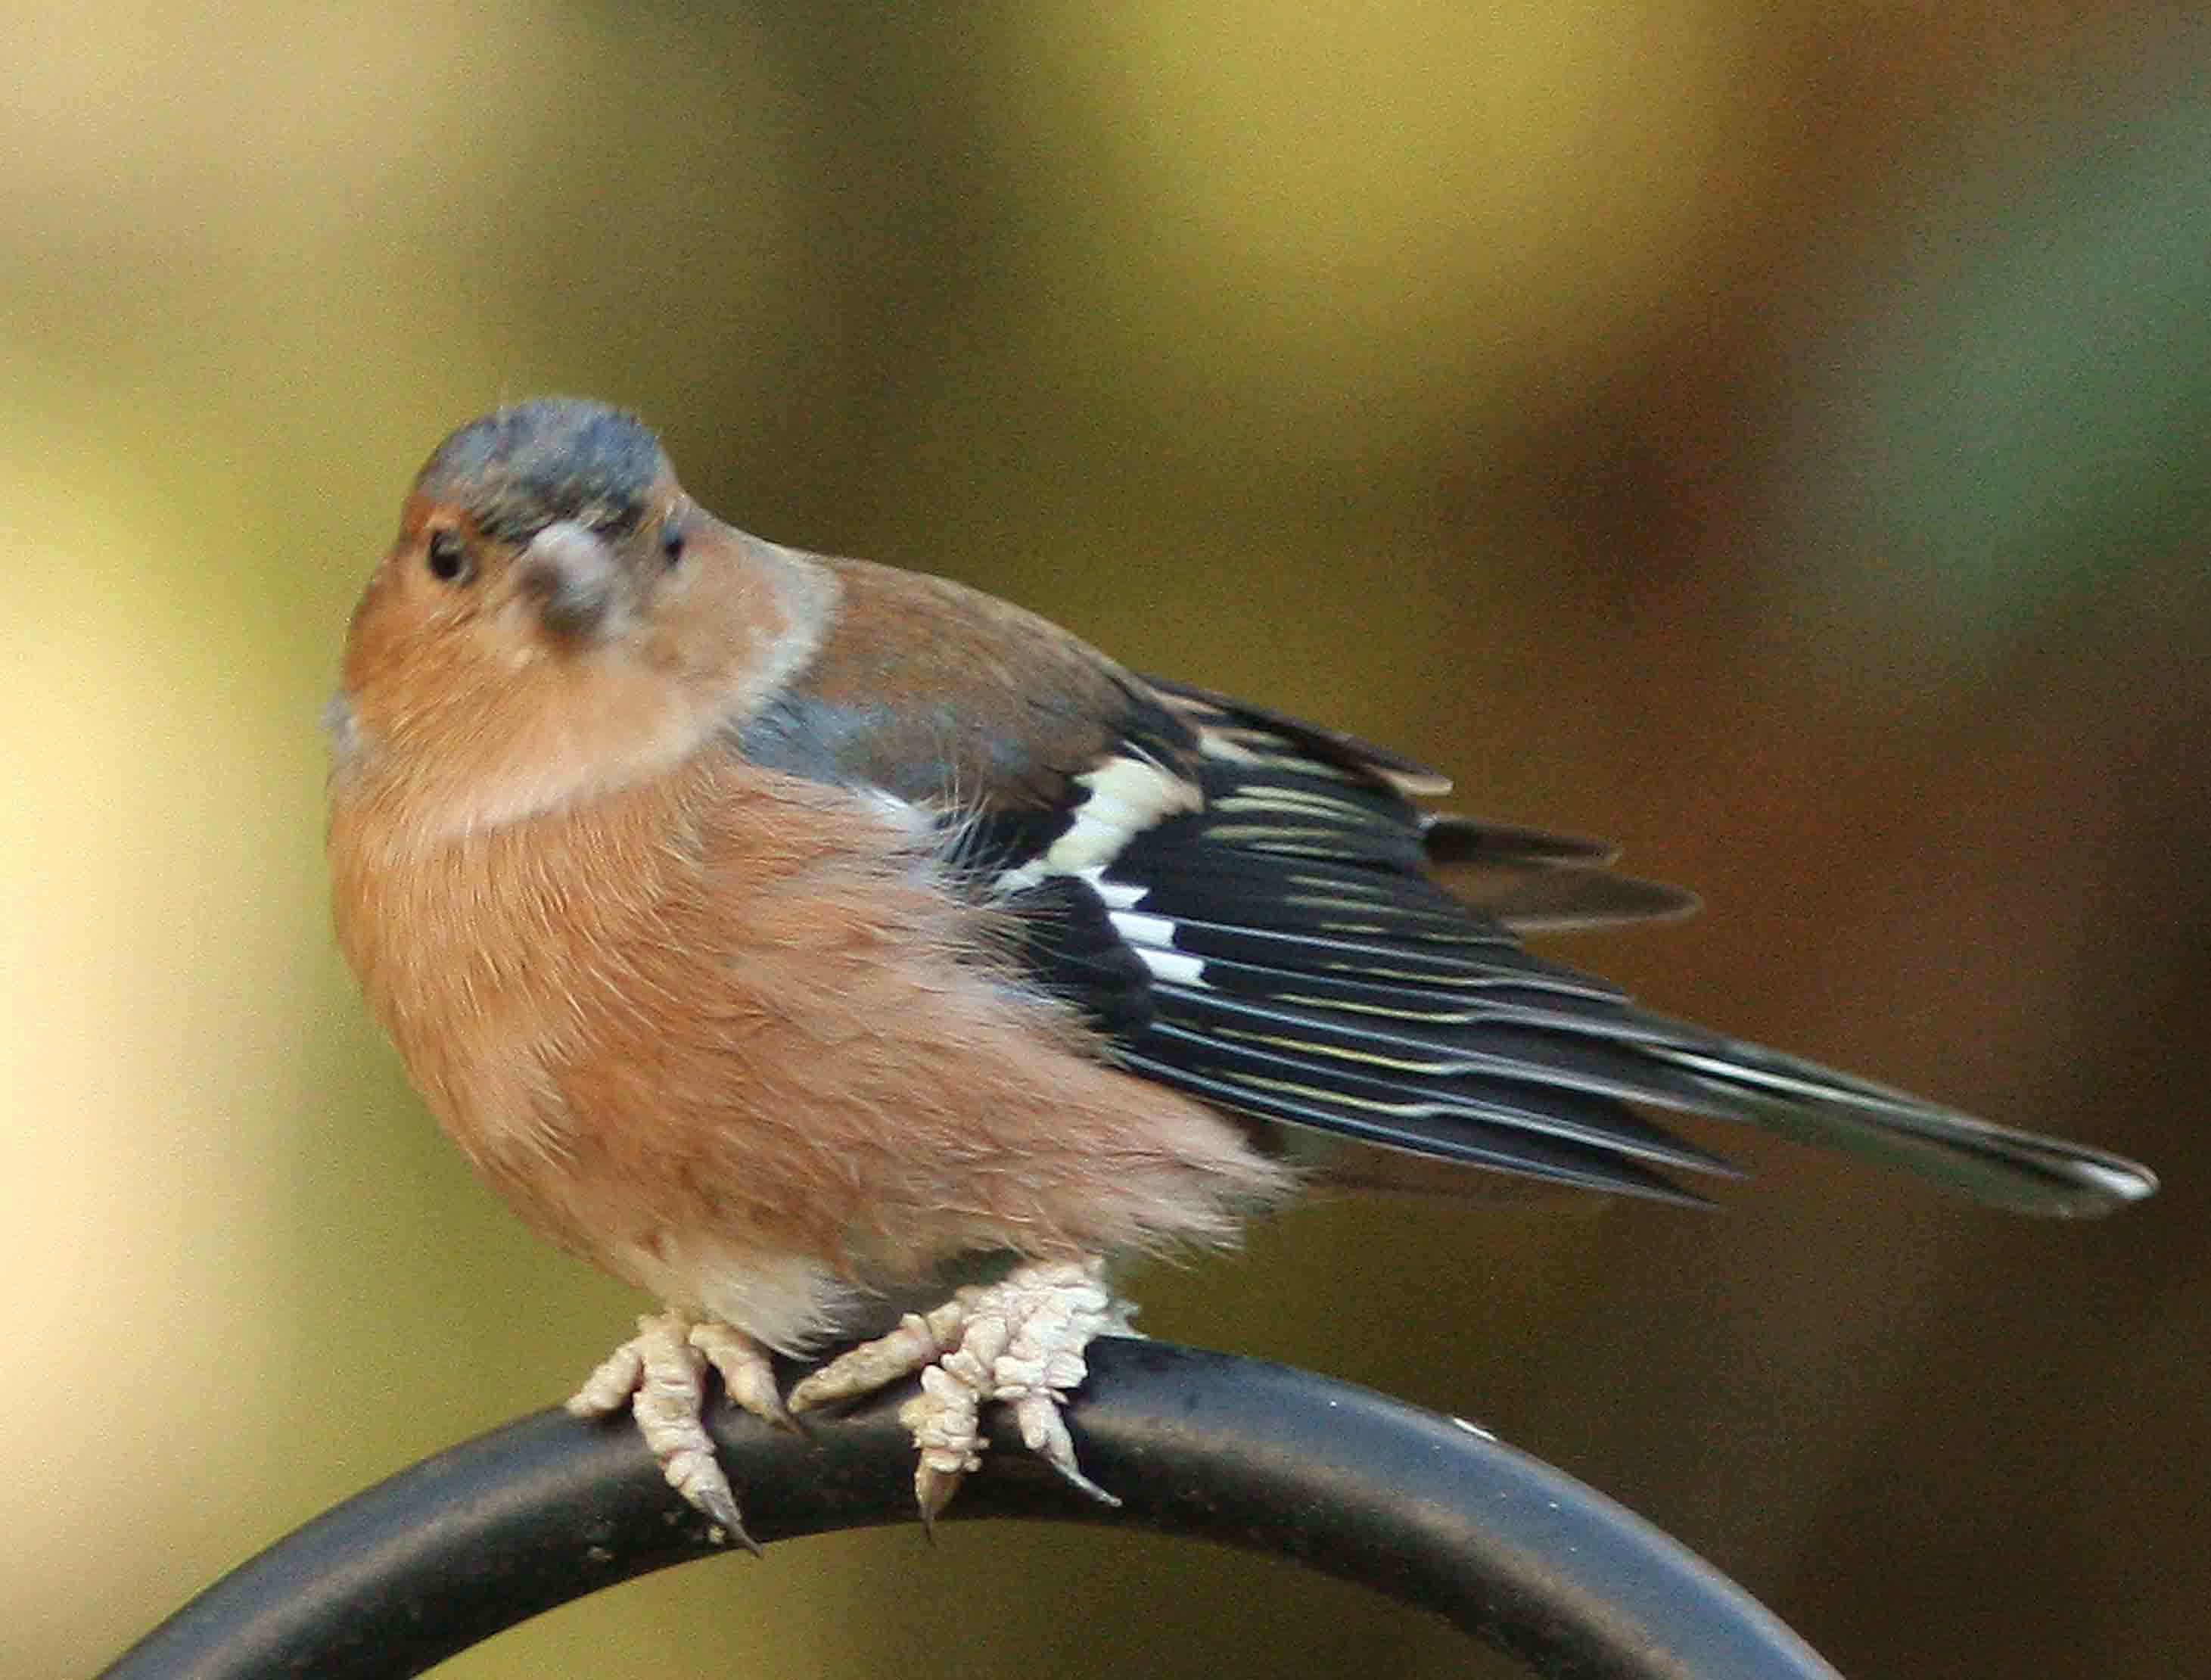 Chaffinch with bad feet - fungus? - Identify this - Wildlife - The ...